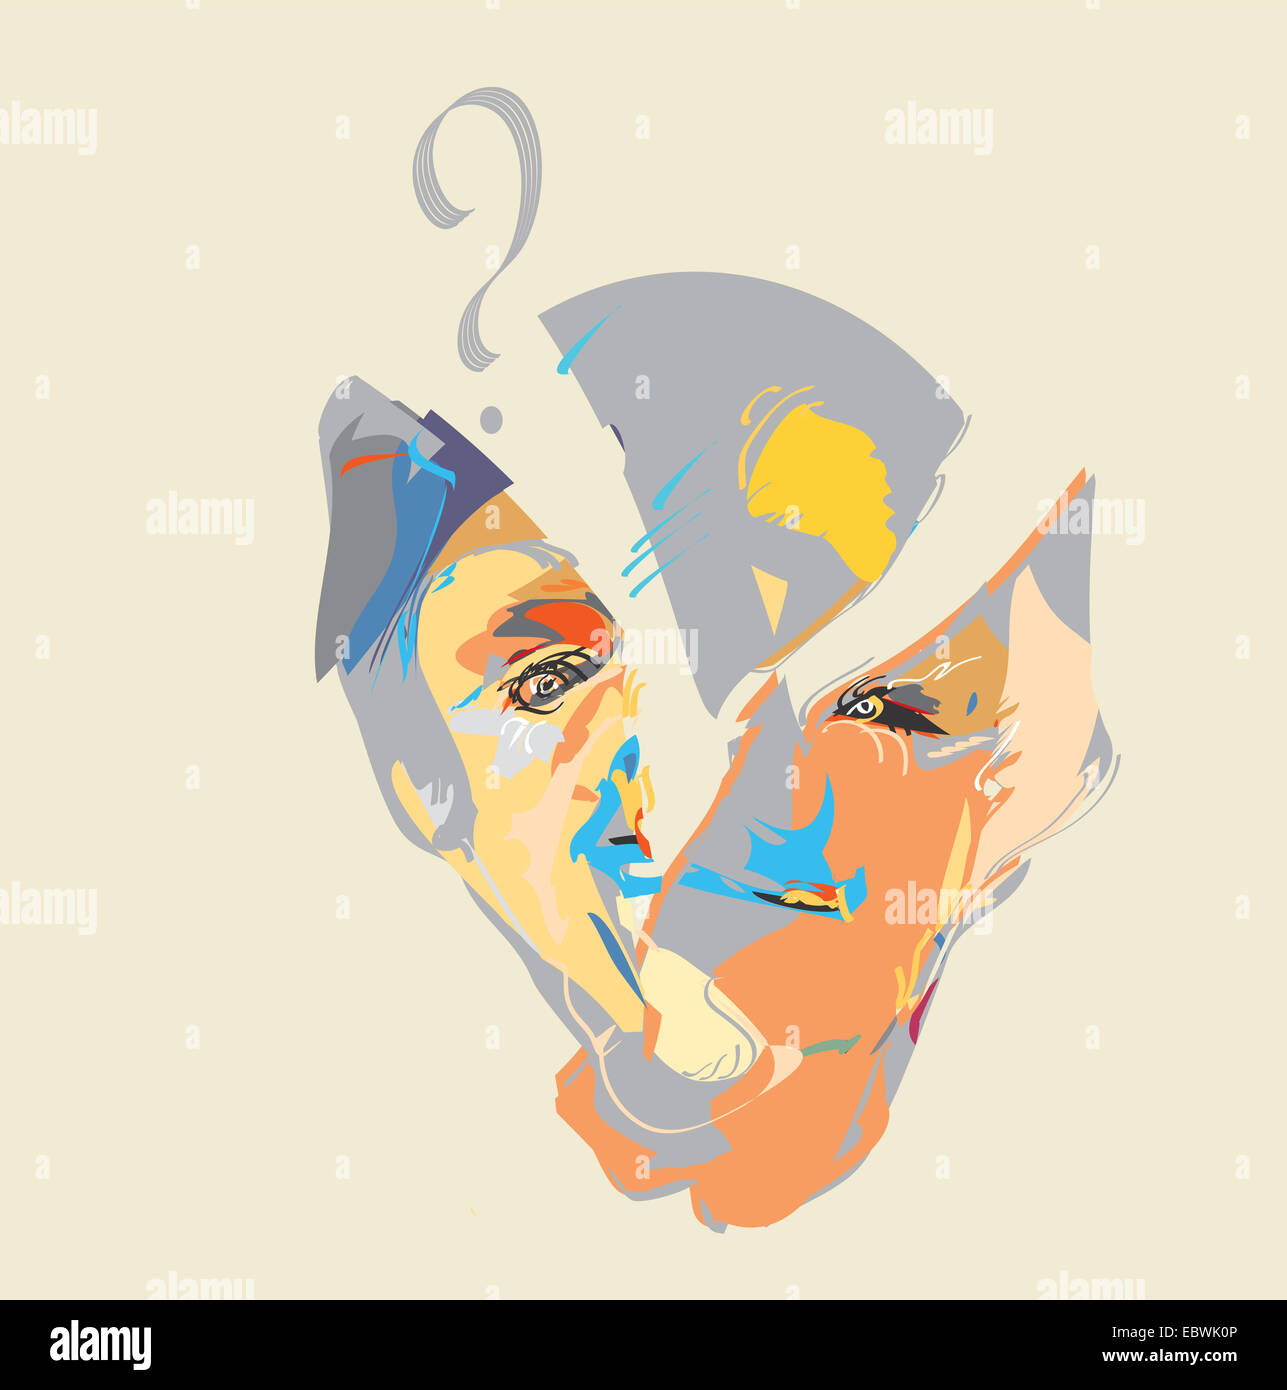 Head and Question - Stock Image